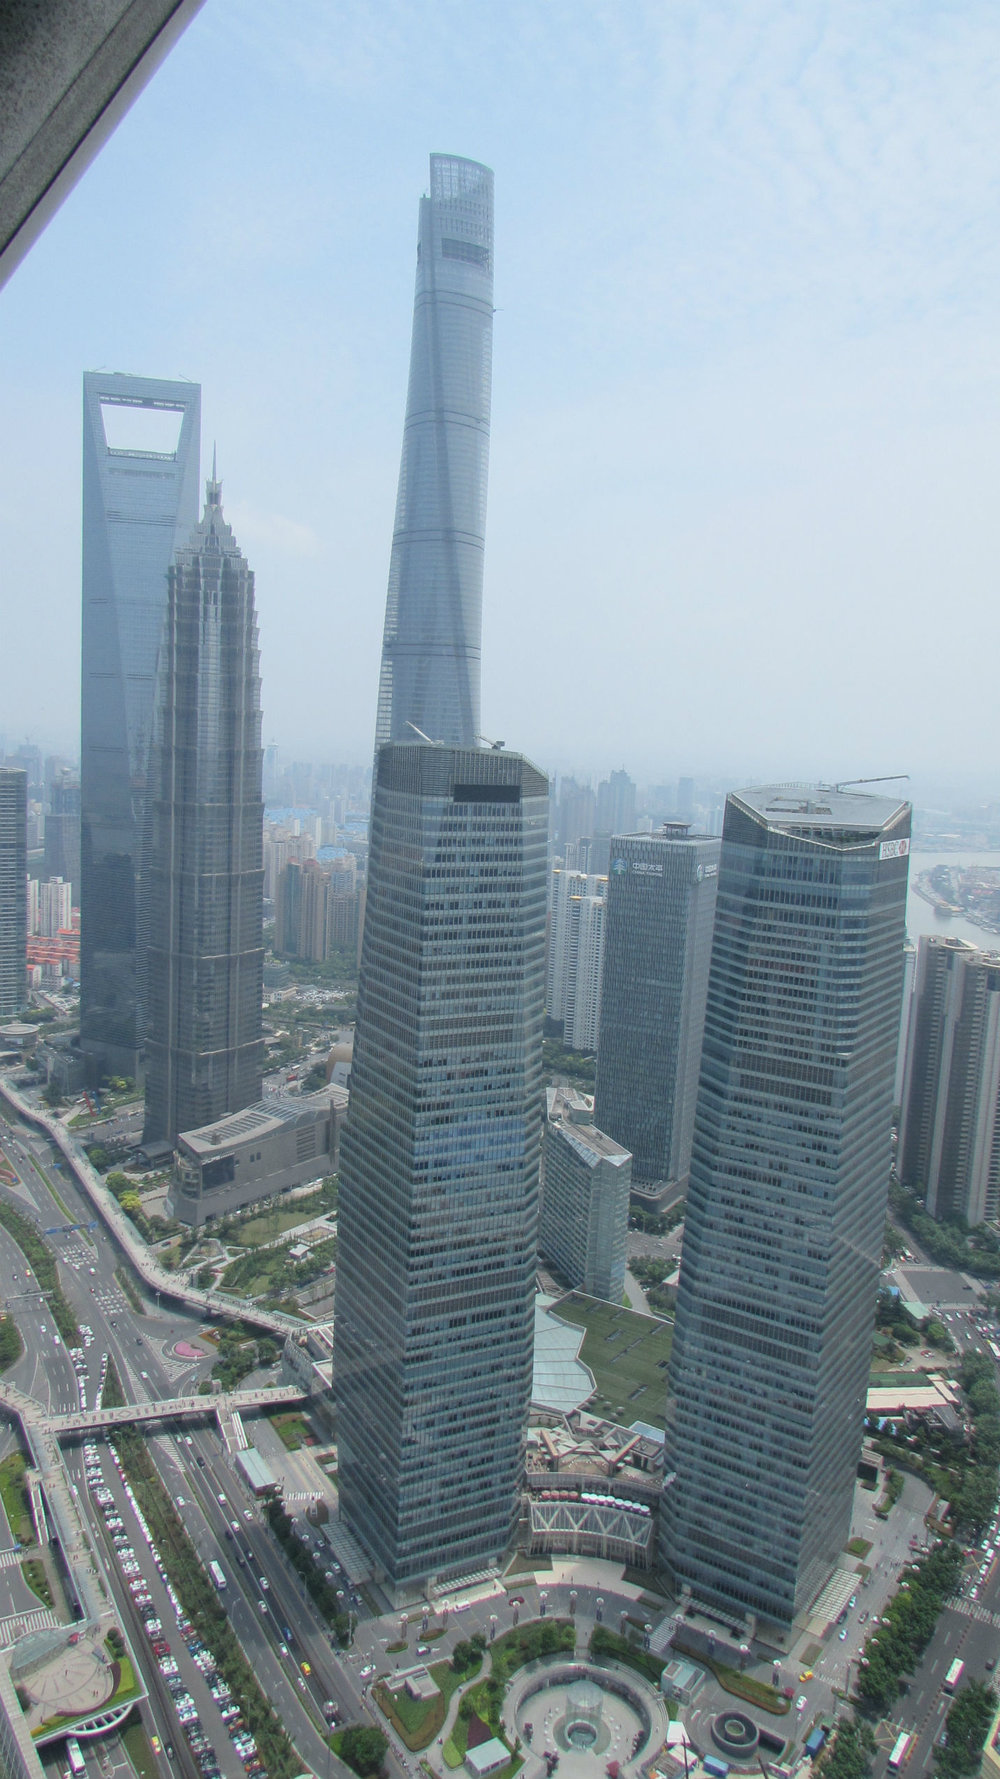 Central Business District with Shanghai Tower